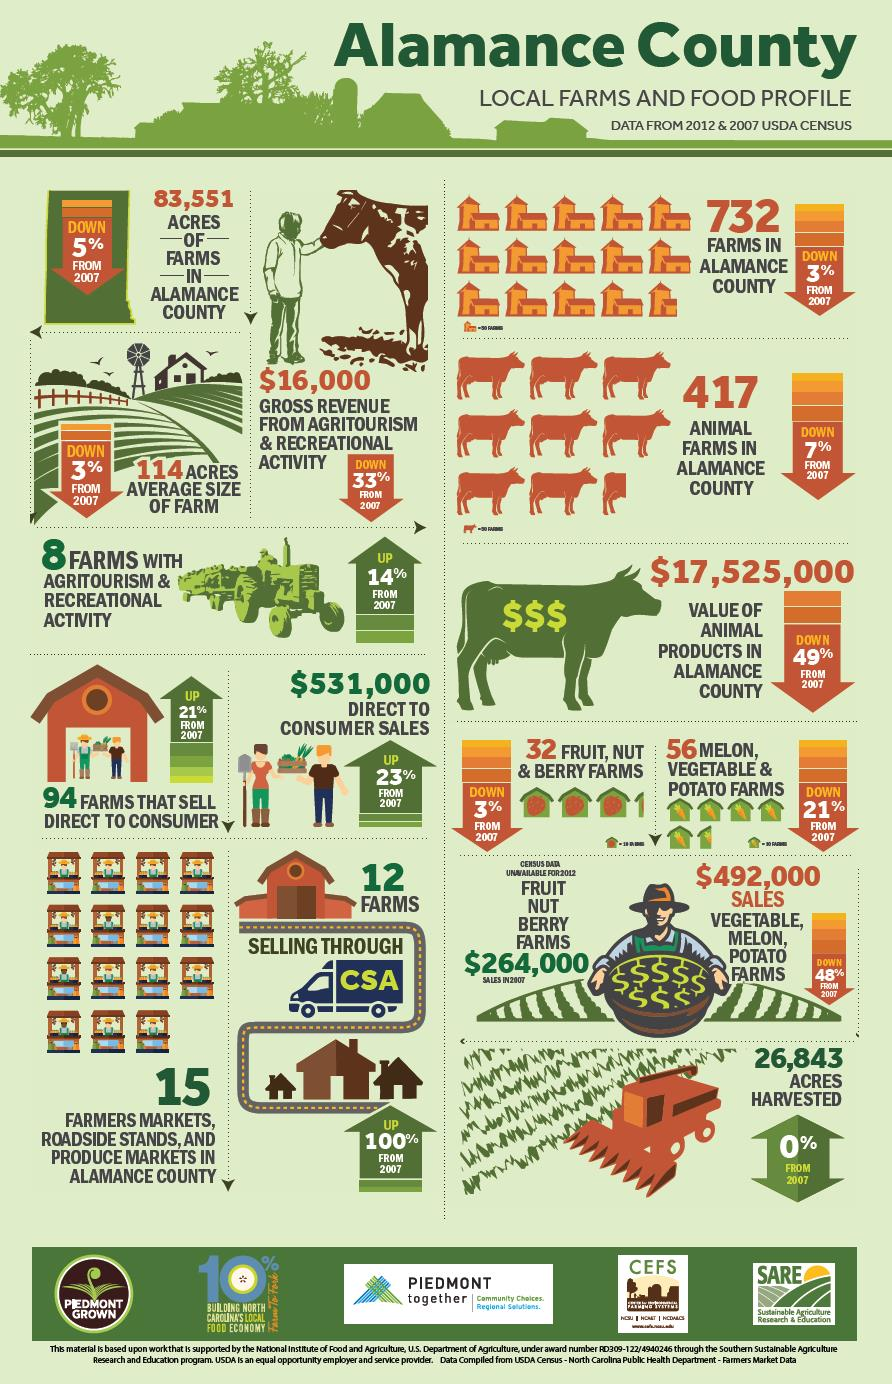 Alamance county local farms and food profile